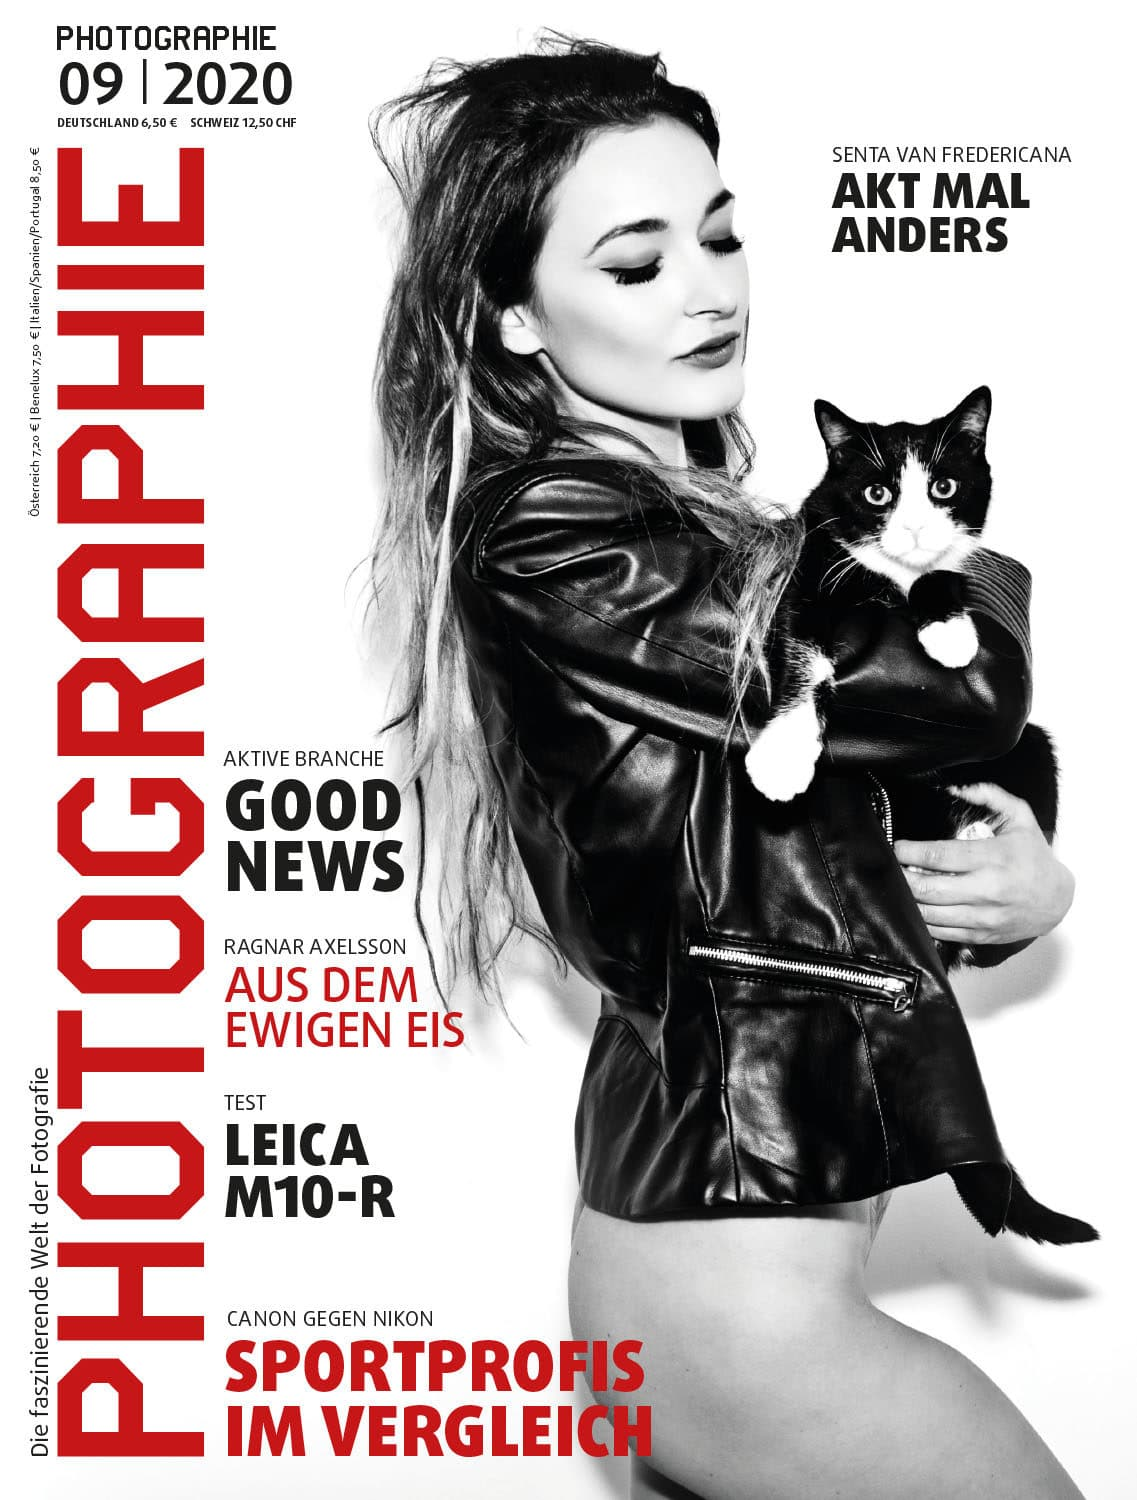 PHOTOGRAPHIE Digitales Magazin 9 2020 Cover